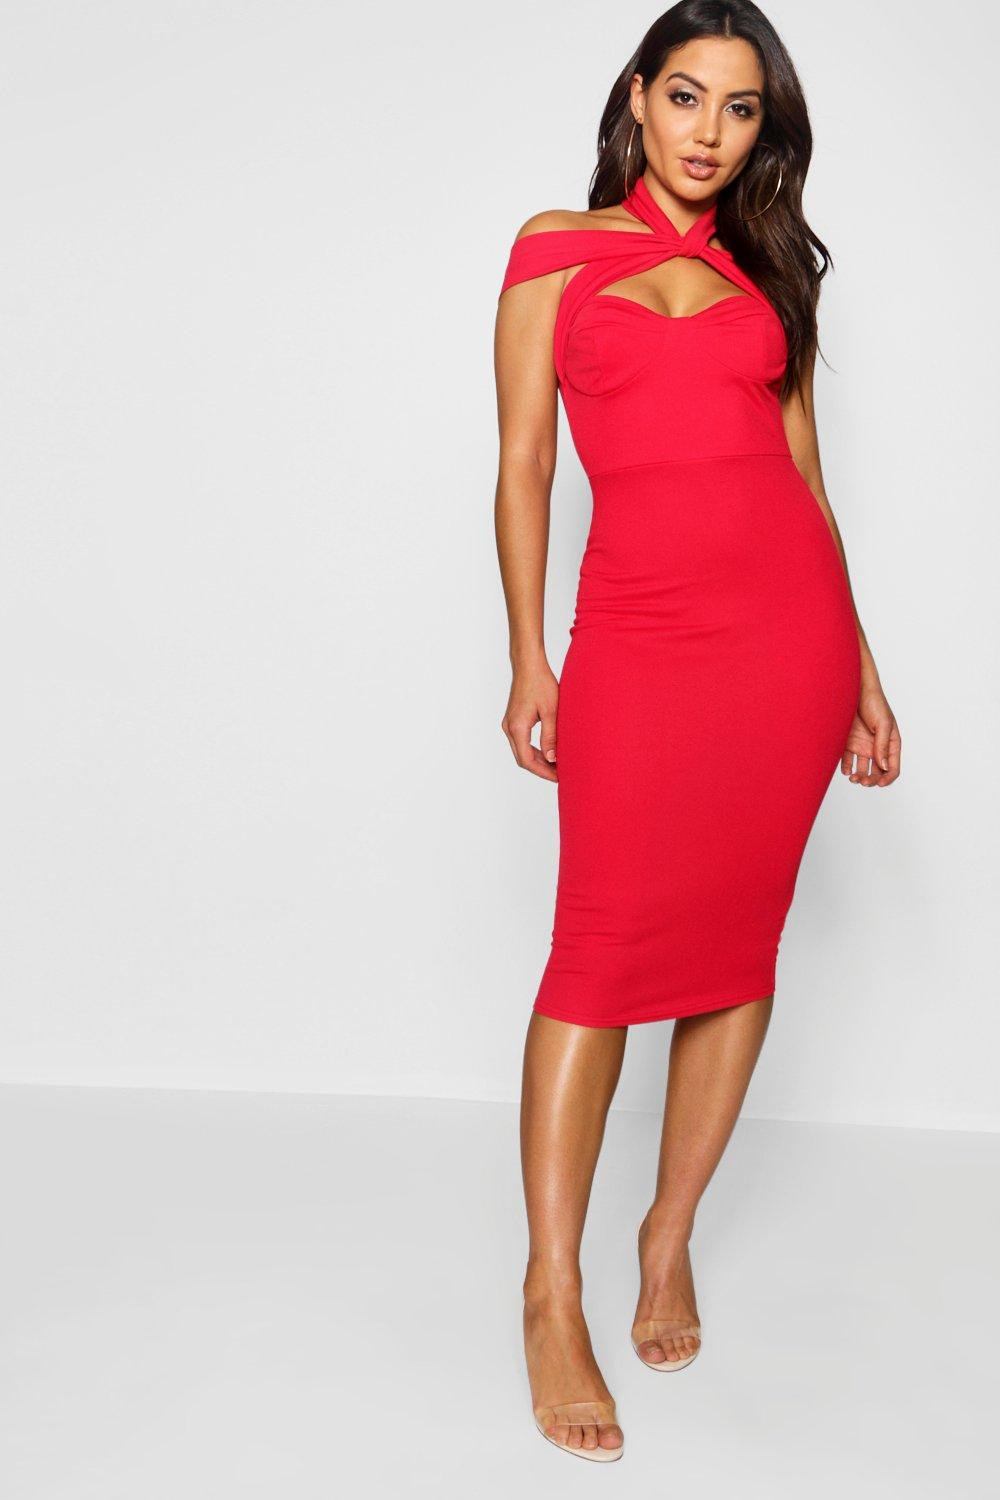 Teen up dress women bodycon where for burnt pink